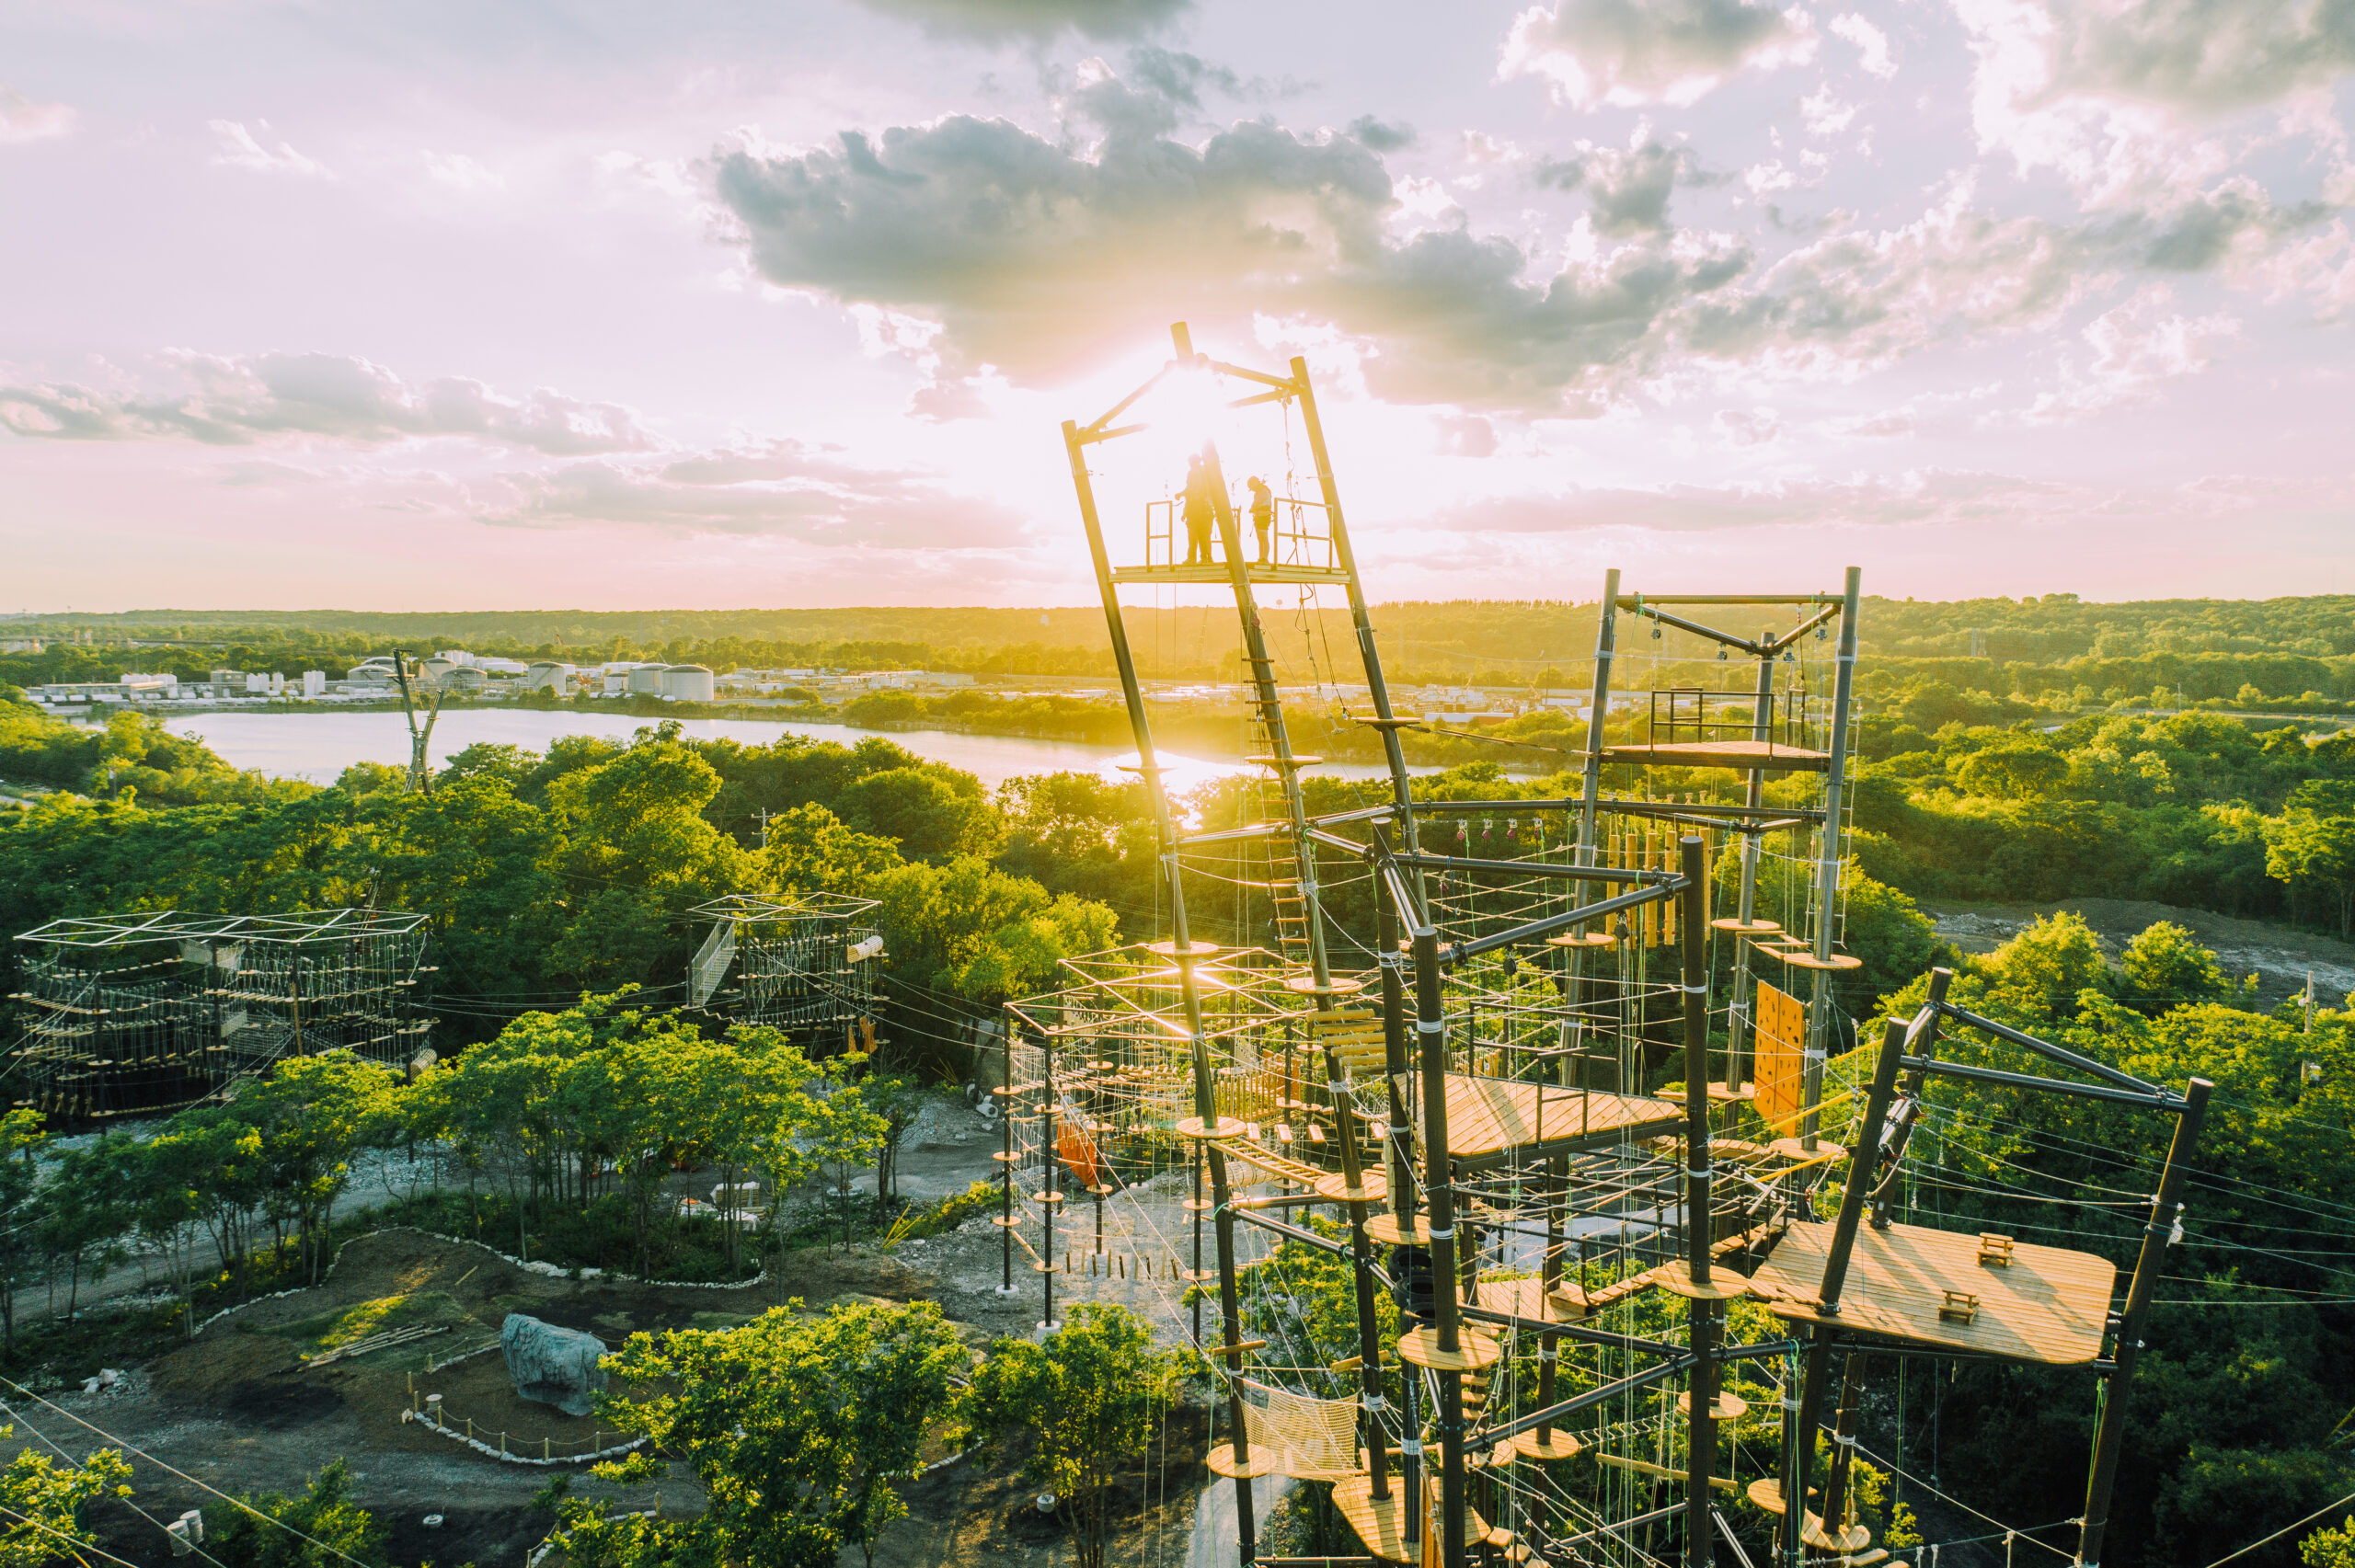 The eight climbing towers at The Forge: Lemont Quarries, seen from a high vantage point with the sun setting behind them